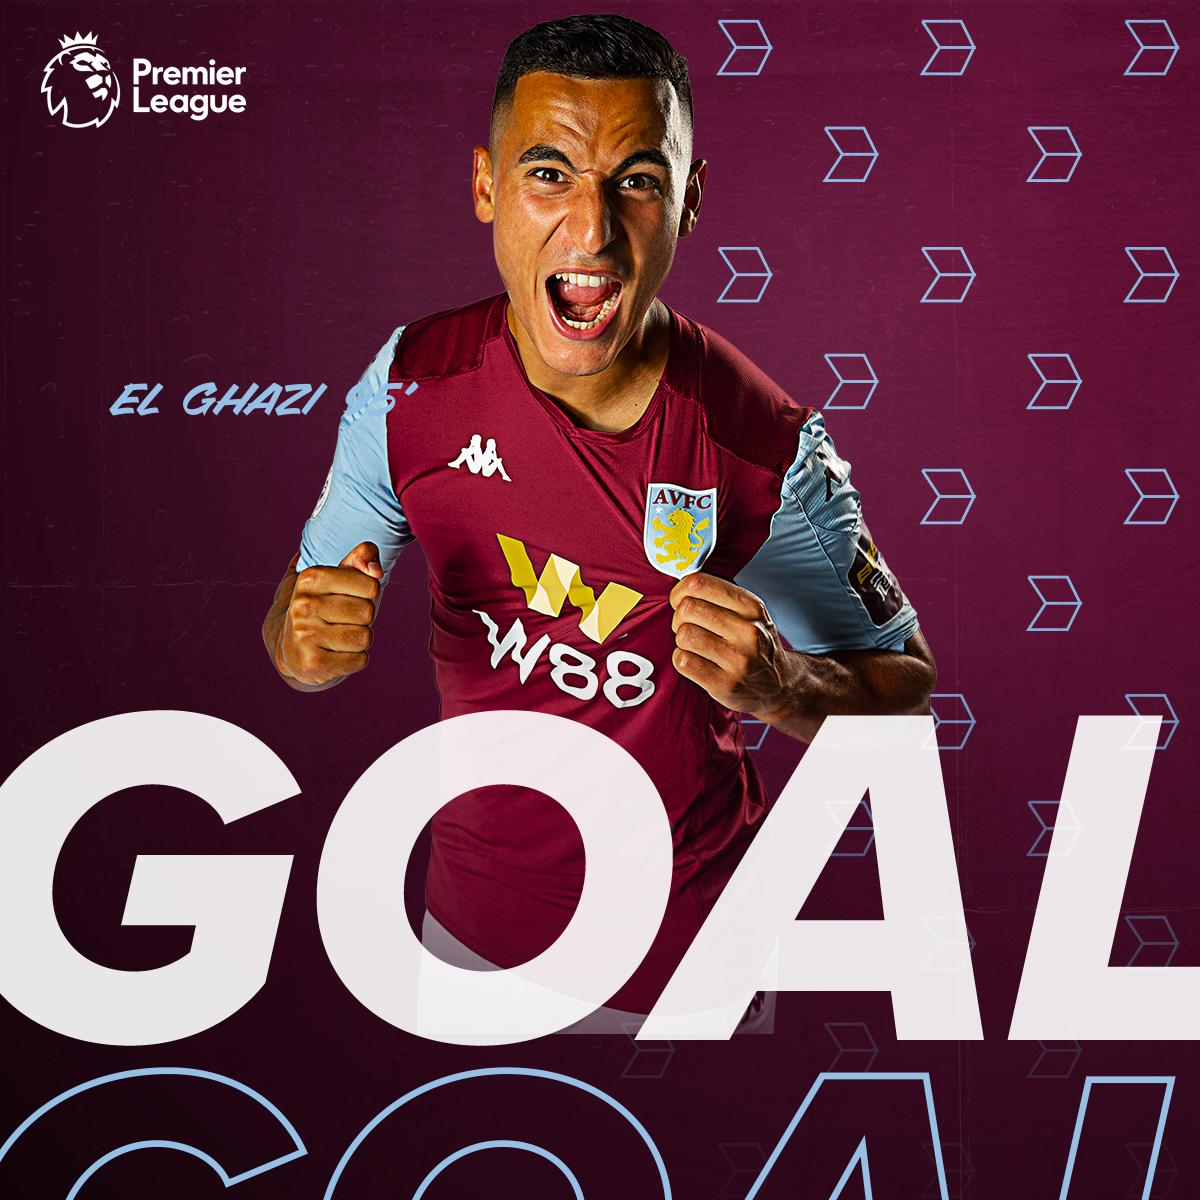 GOAL! GOAL! GOAL!  @AElGhazi7 with the second!    2-0   #PL #AVFC<br>http://pic.twitter.com/akHvBpRNoA